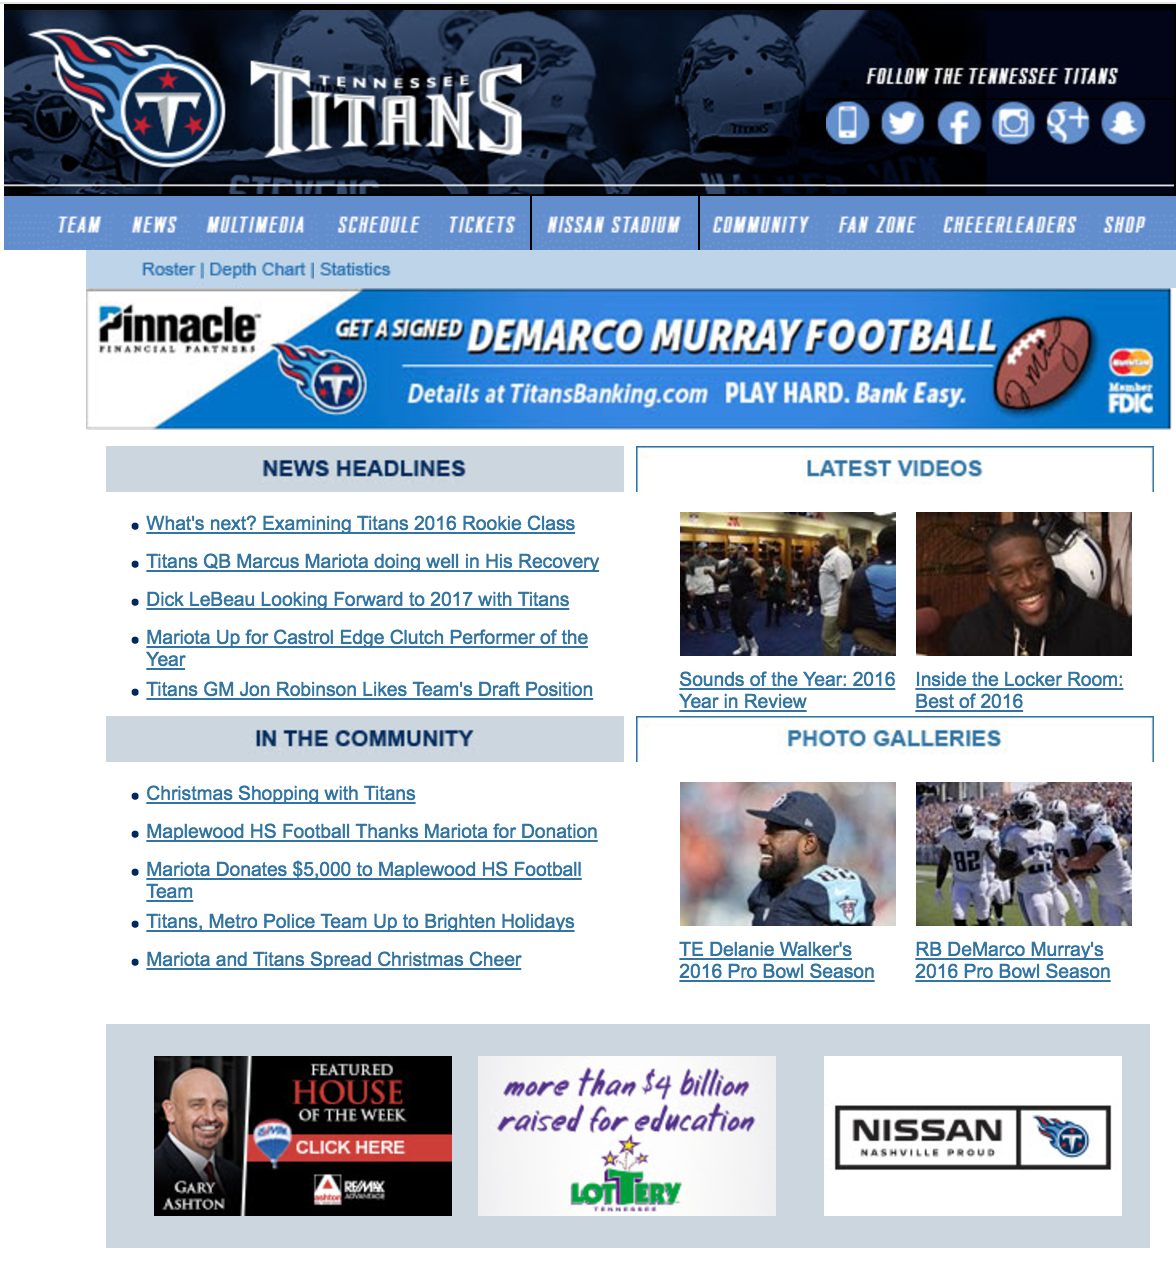 Titans Featured Home of The week